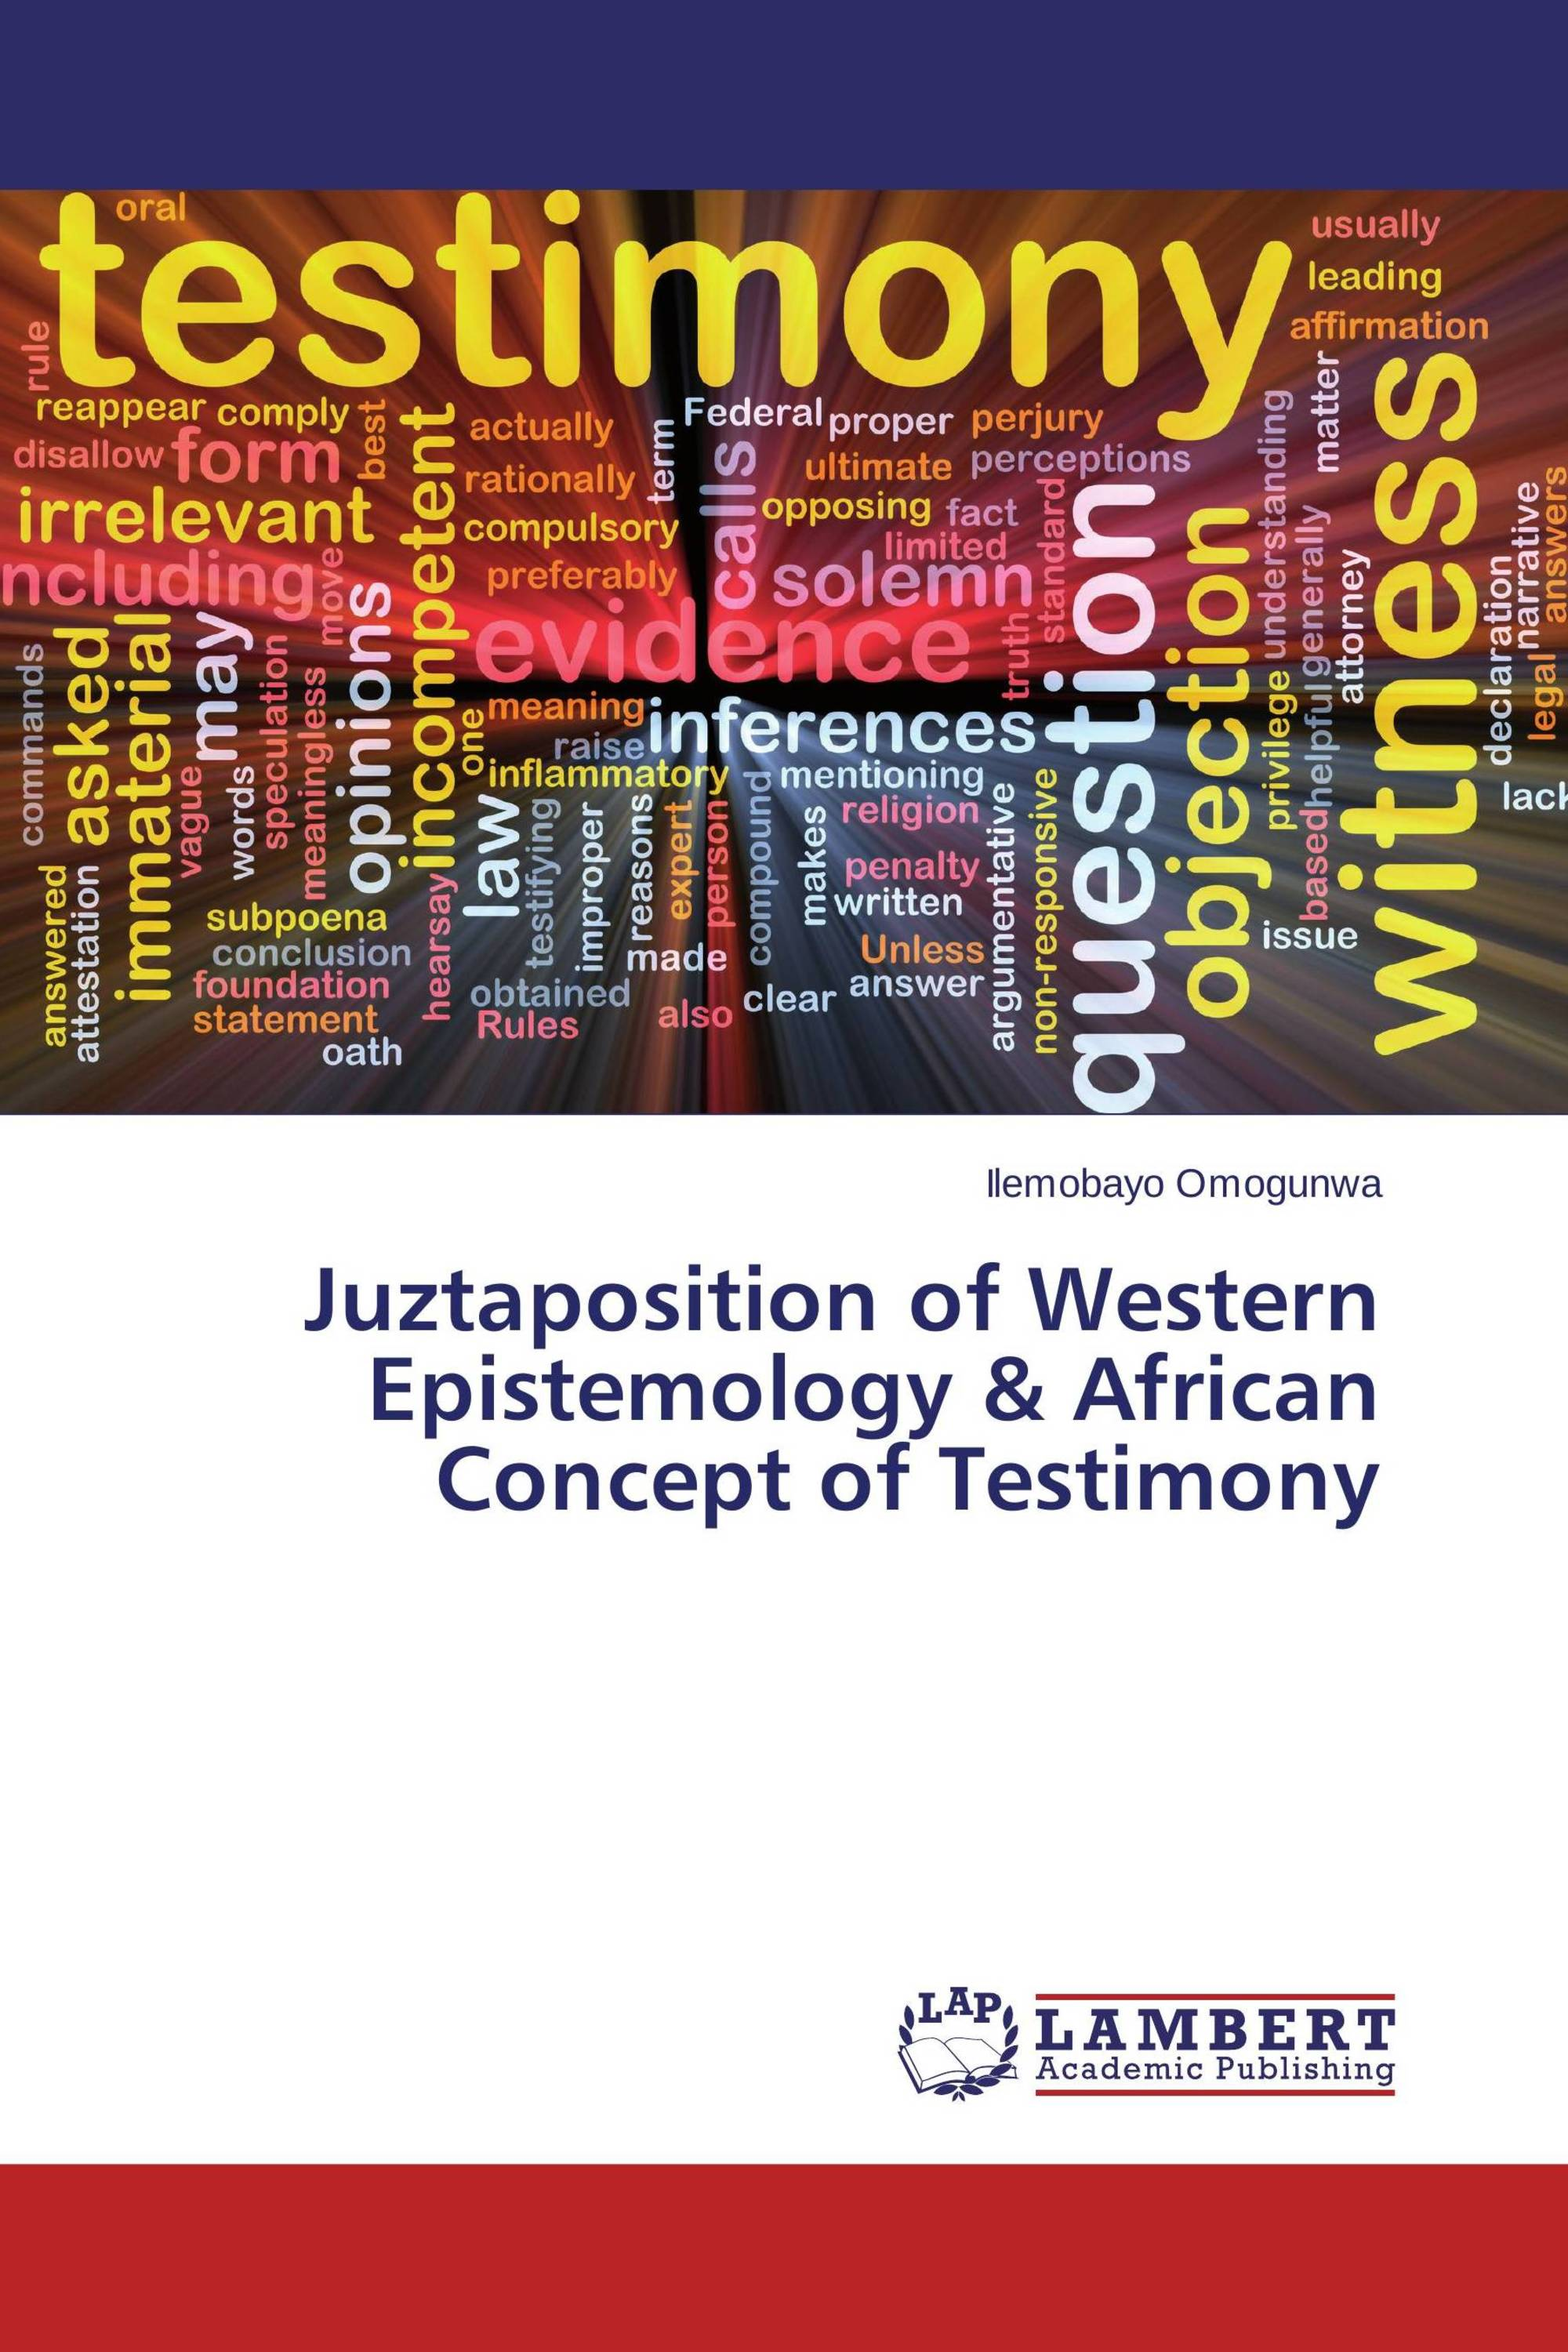 Juztaposition of Western Epistemology & African Concept of Testimony